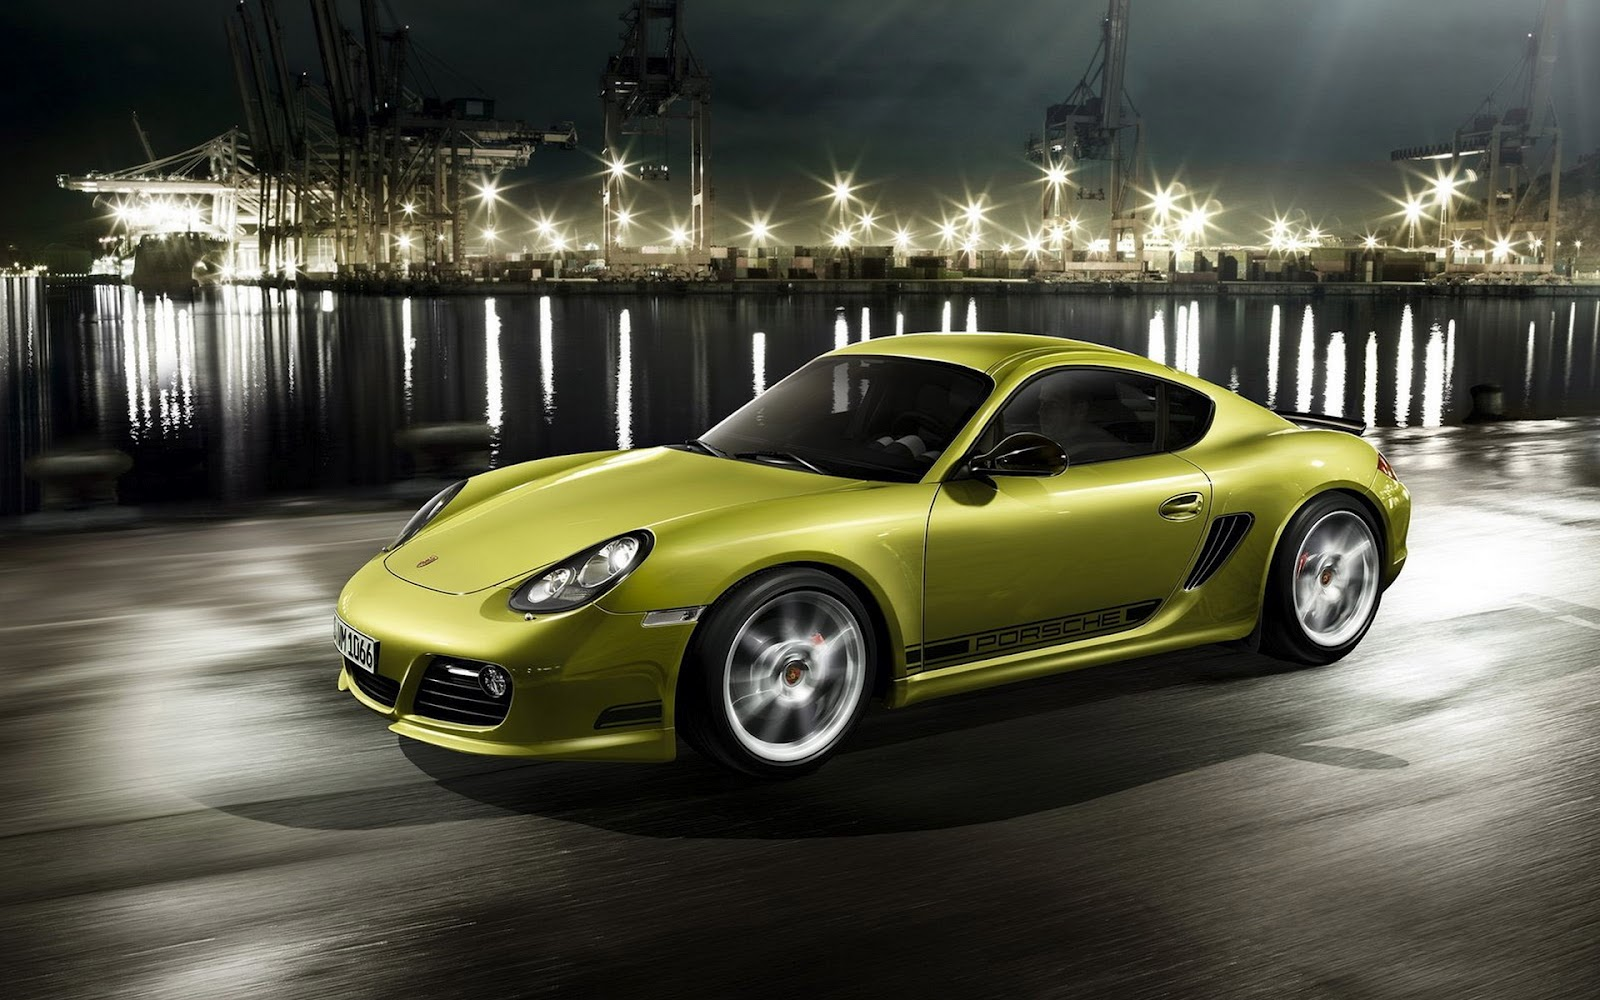 Green Porsche Wallpaper